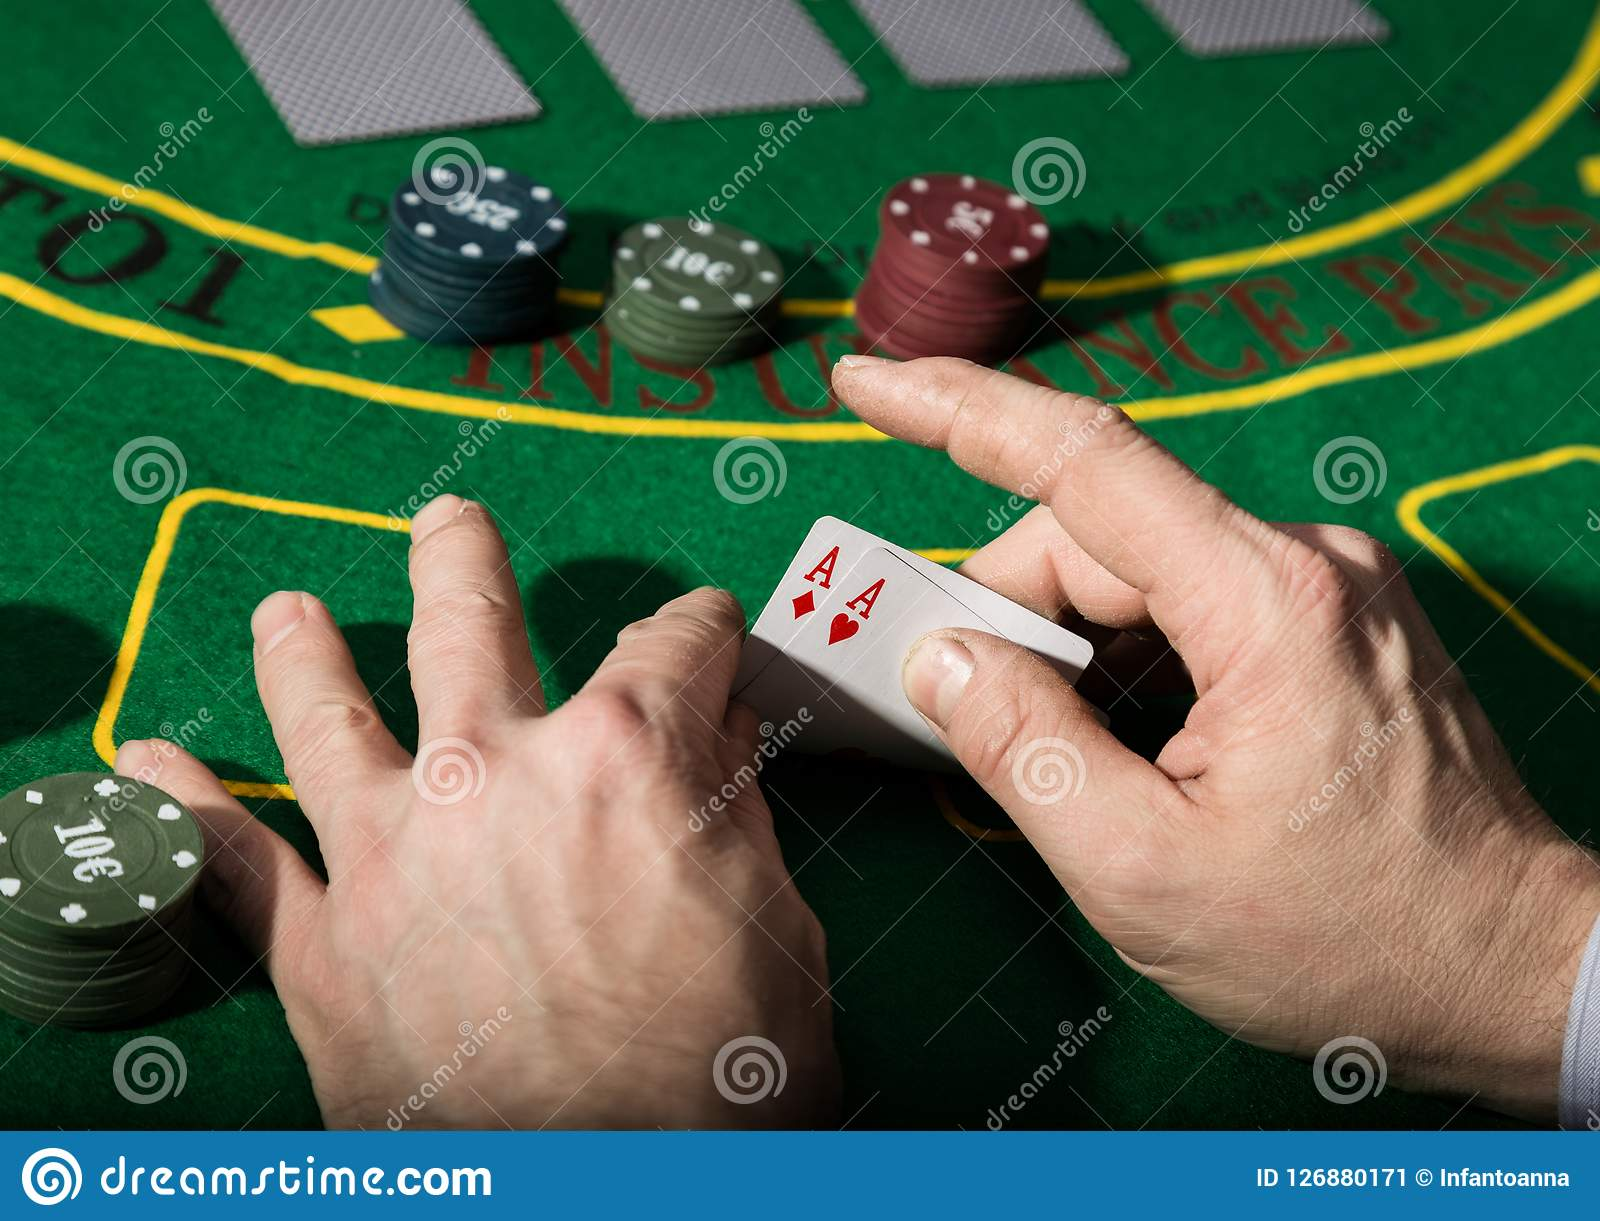 Winning combination in poker game. Cards and chips on a green cloth